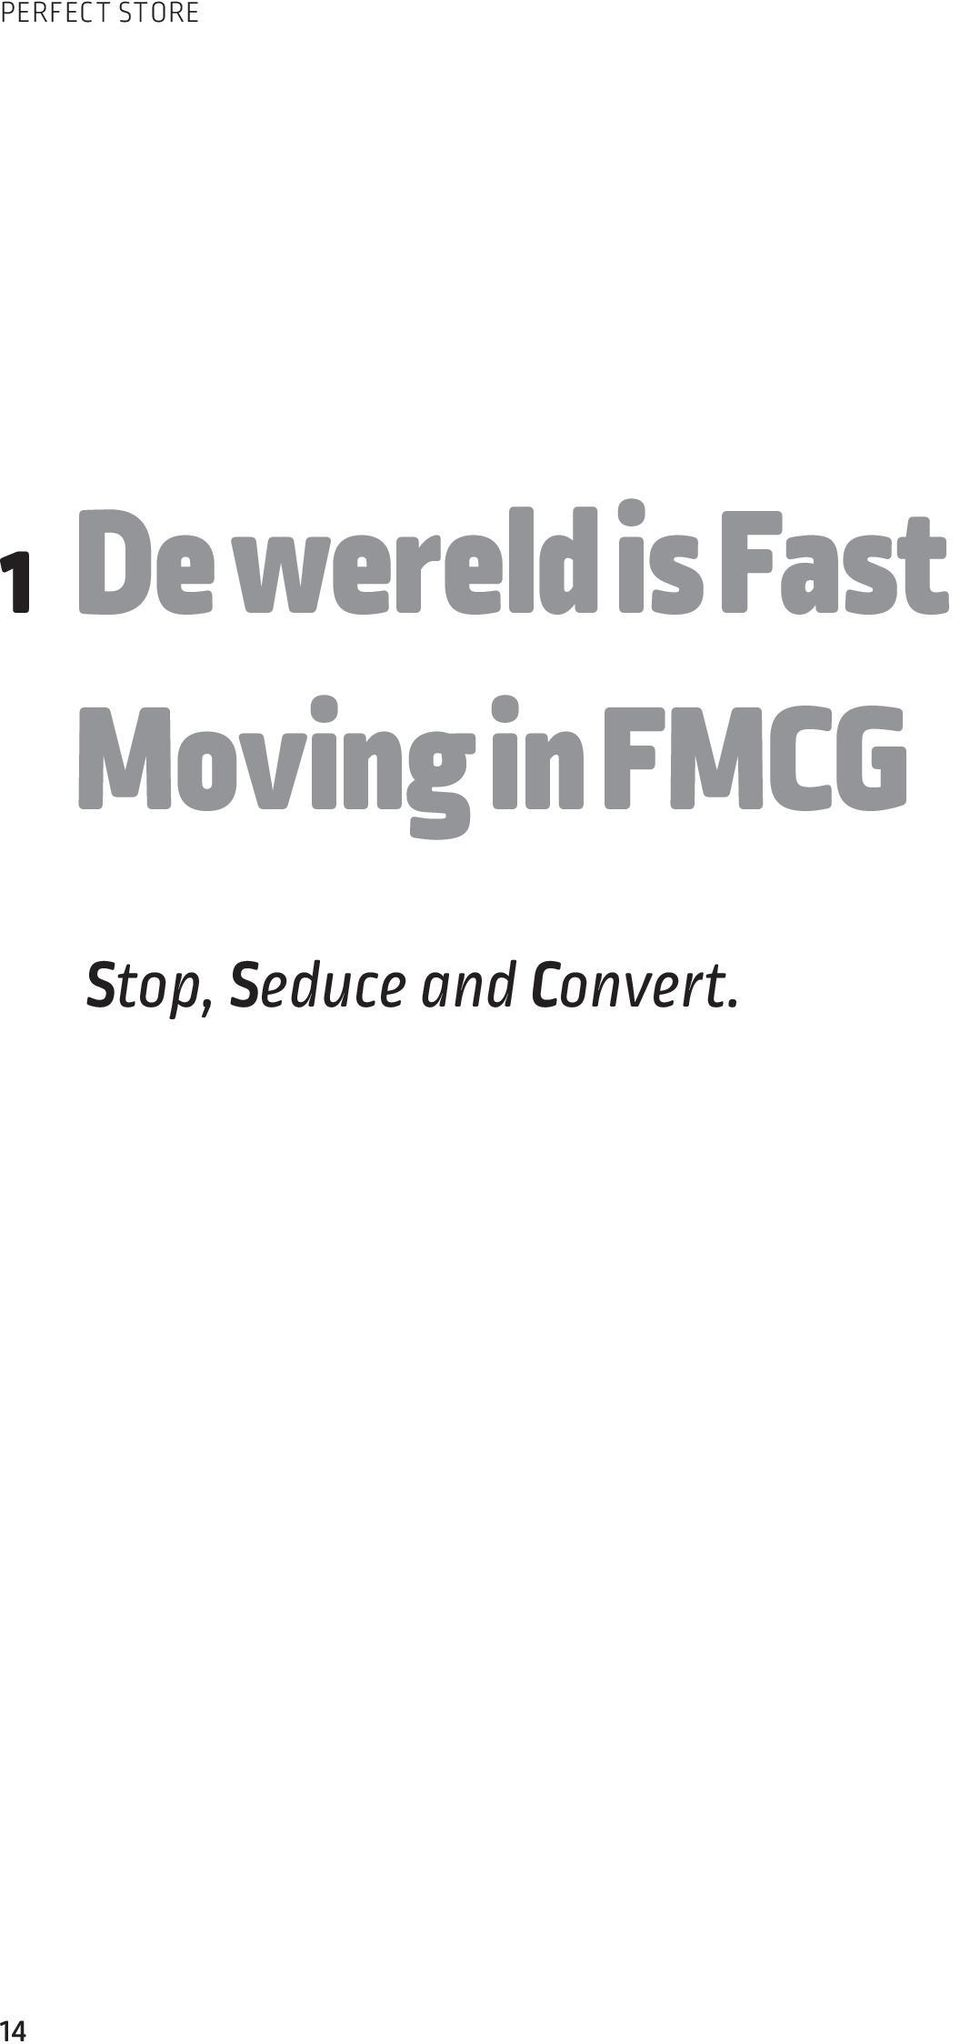 Moving in FMCG